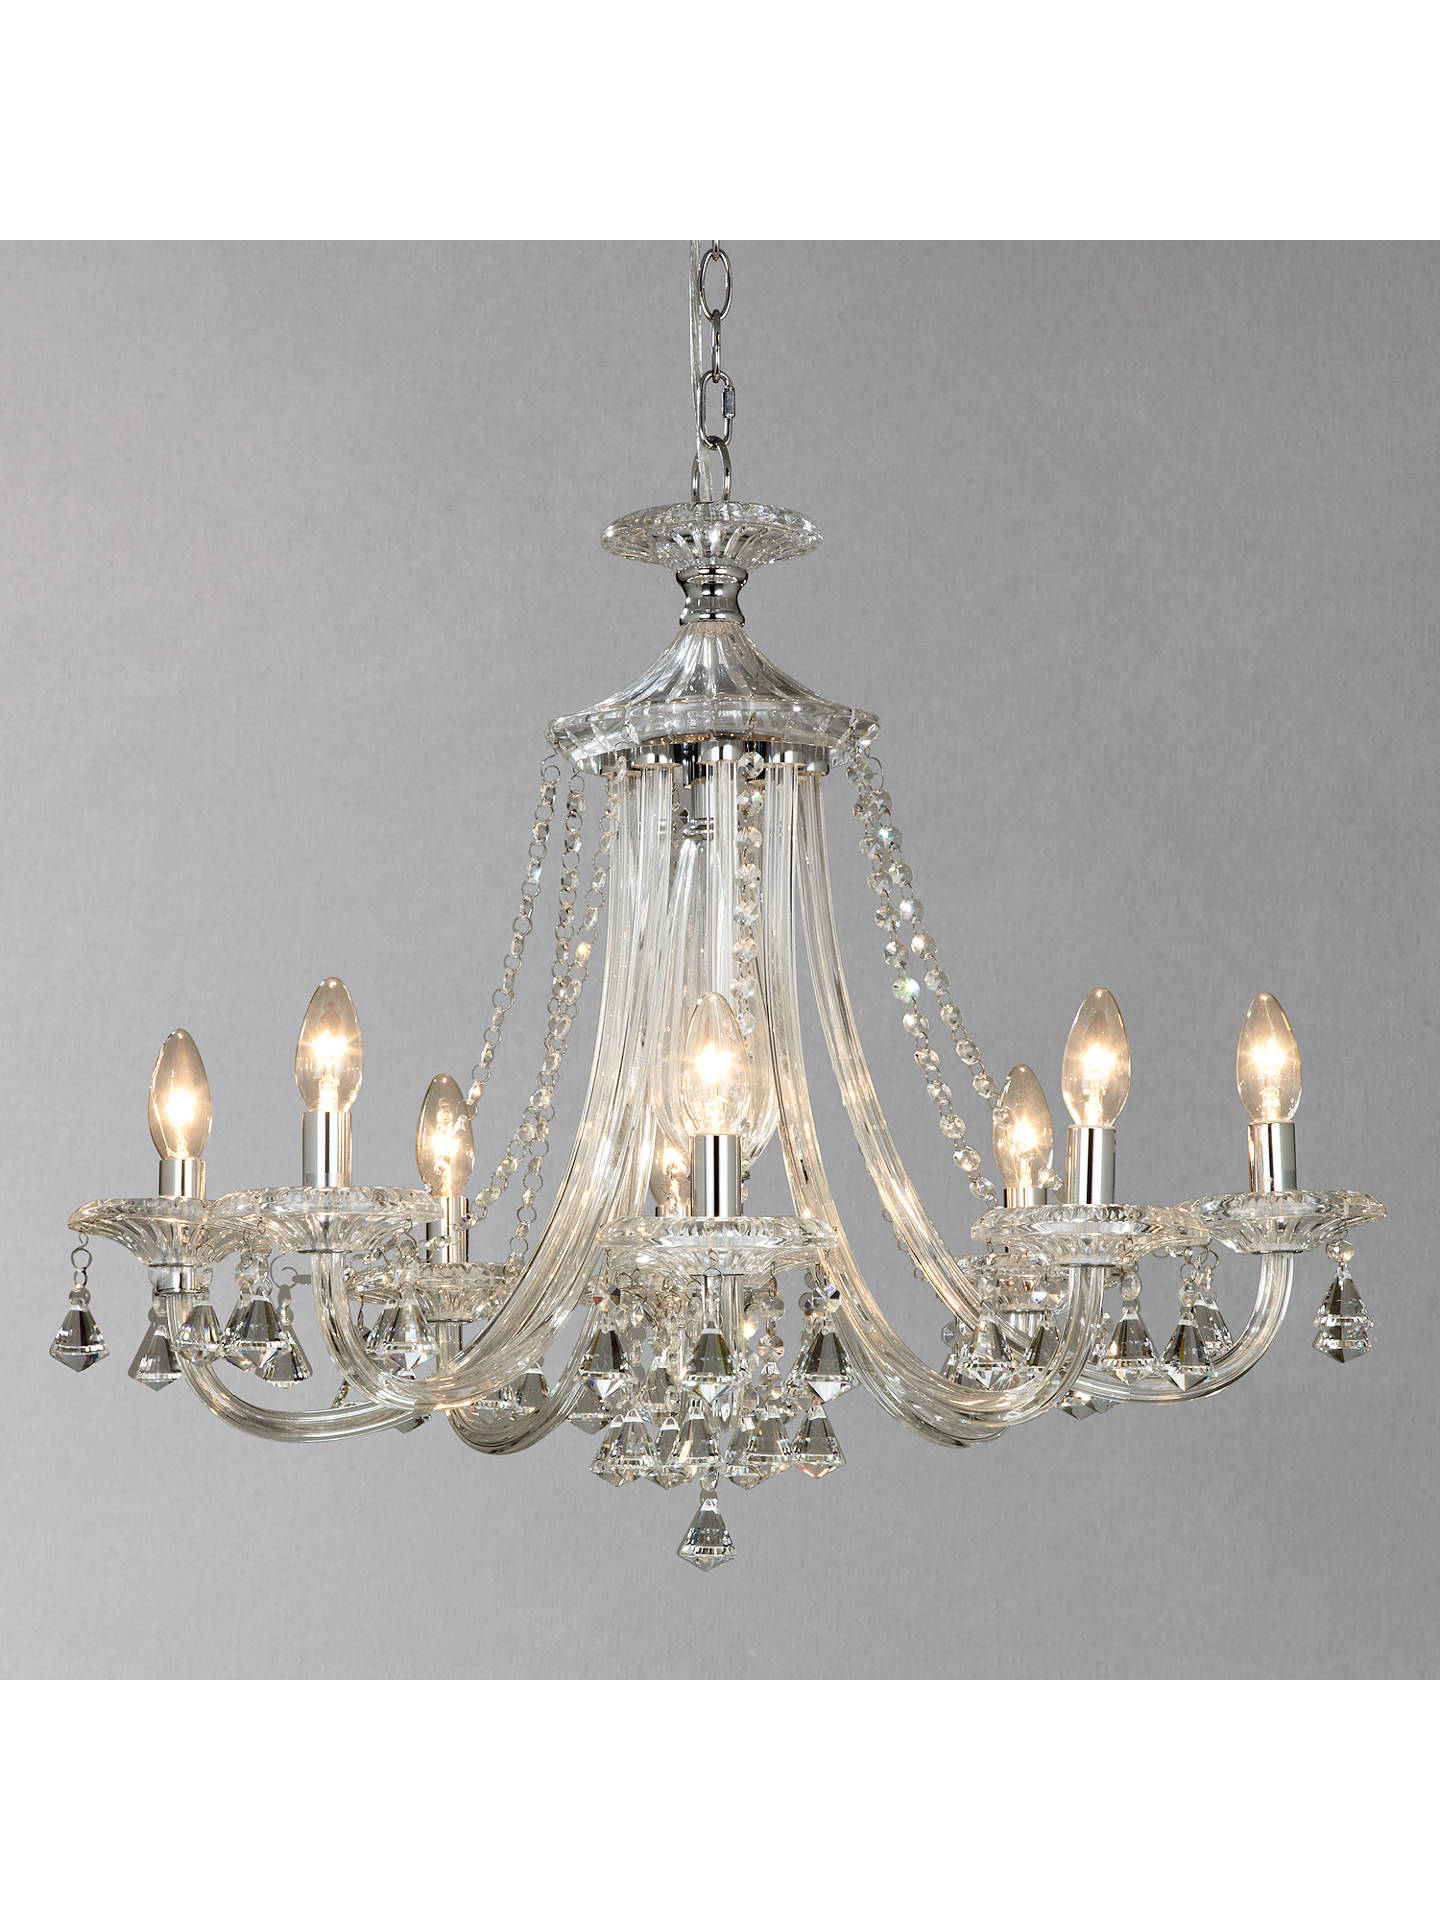 BuyJohn Lewis & Partners Ophelia Crystal Chandelier, 8 Light Online at johnlewis.com